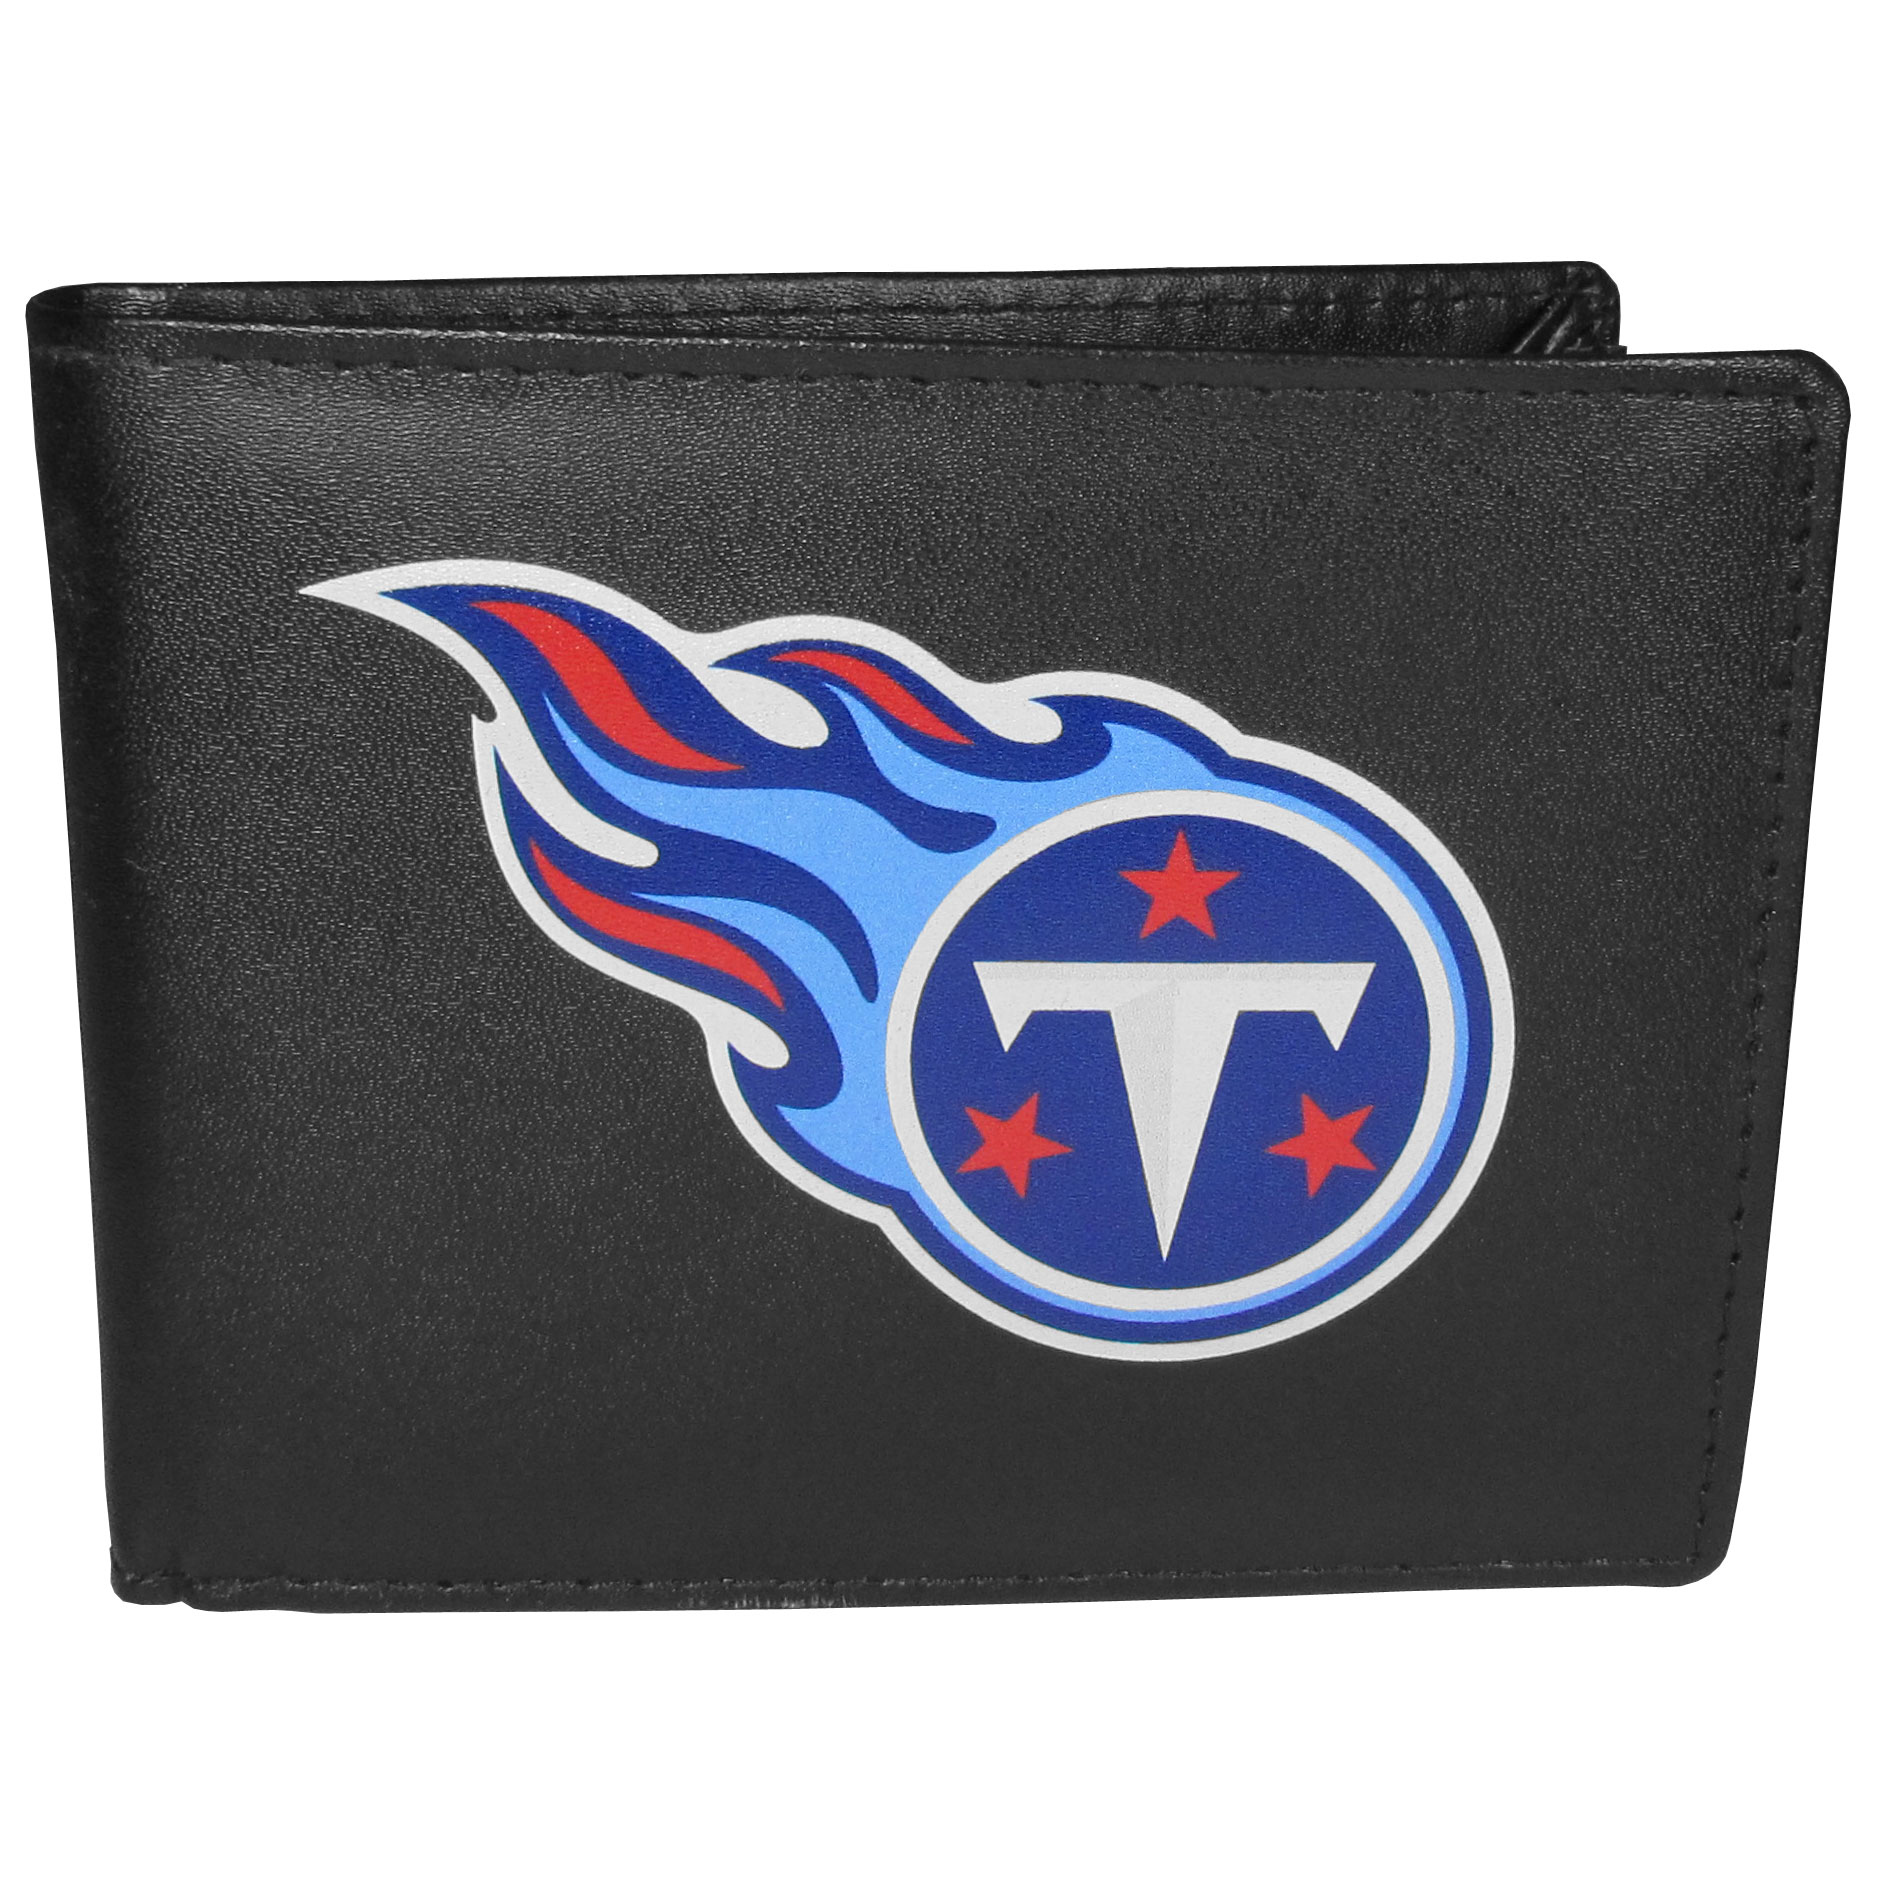 Tennessee Titans Leather Bi-fold Wallet, Large Logo - Our classic fine leather bi-fold wallet is meticulously crafted with genuine leather that will age beautifully so you will have a quality wallet for years to come. The wallet opens to a large, billfold pocket and numerous credit card slots and has a convenient windowed ID slot. The front of the wallet features an extra large Tennessee Titans printed logo.